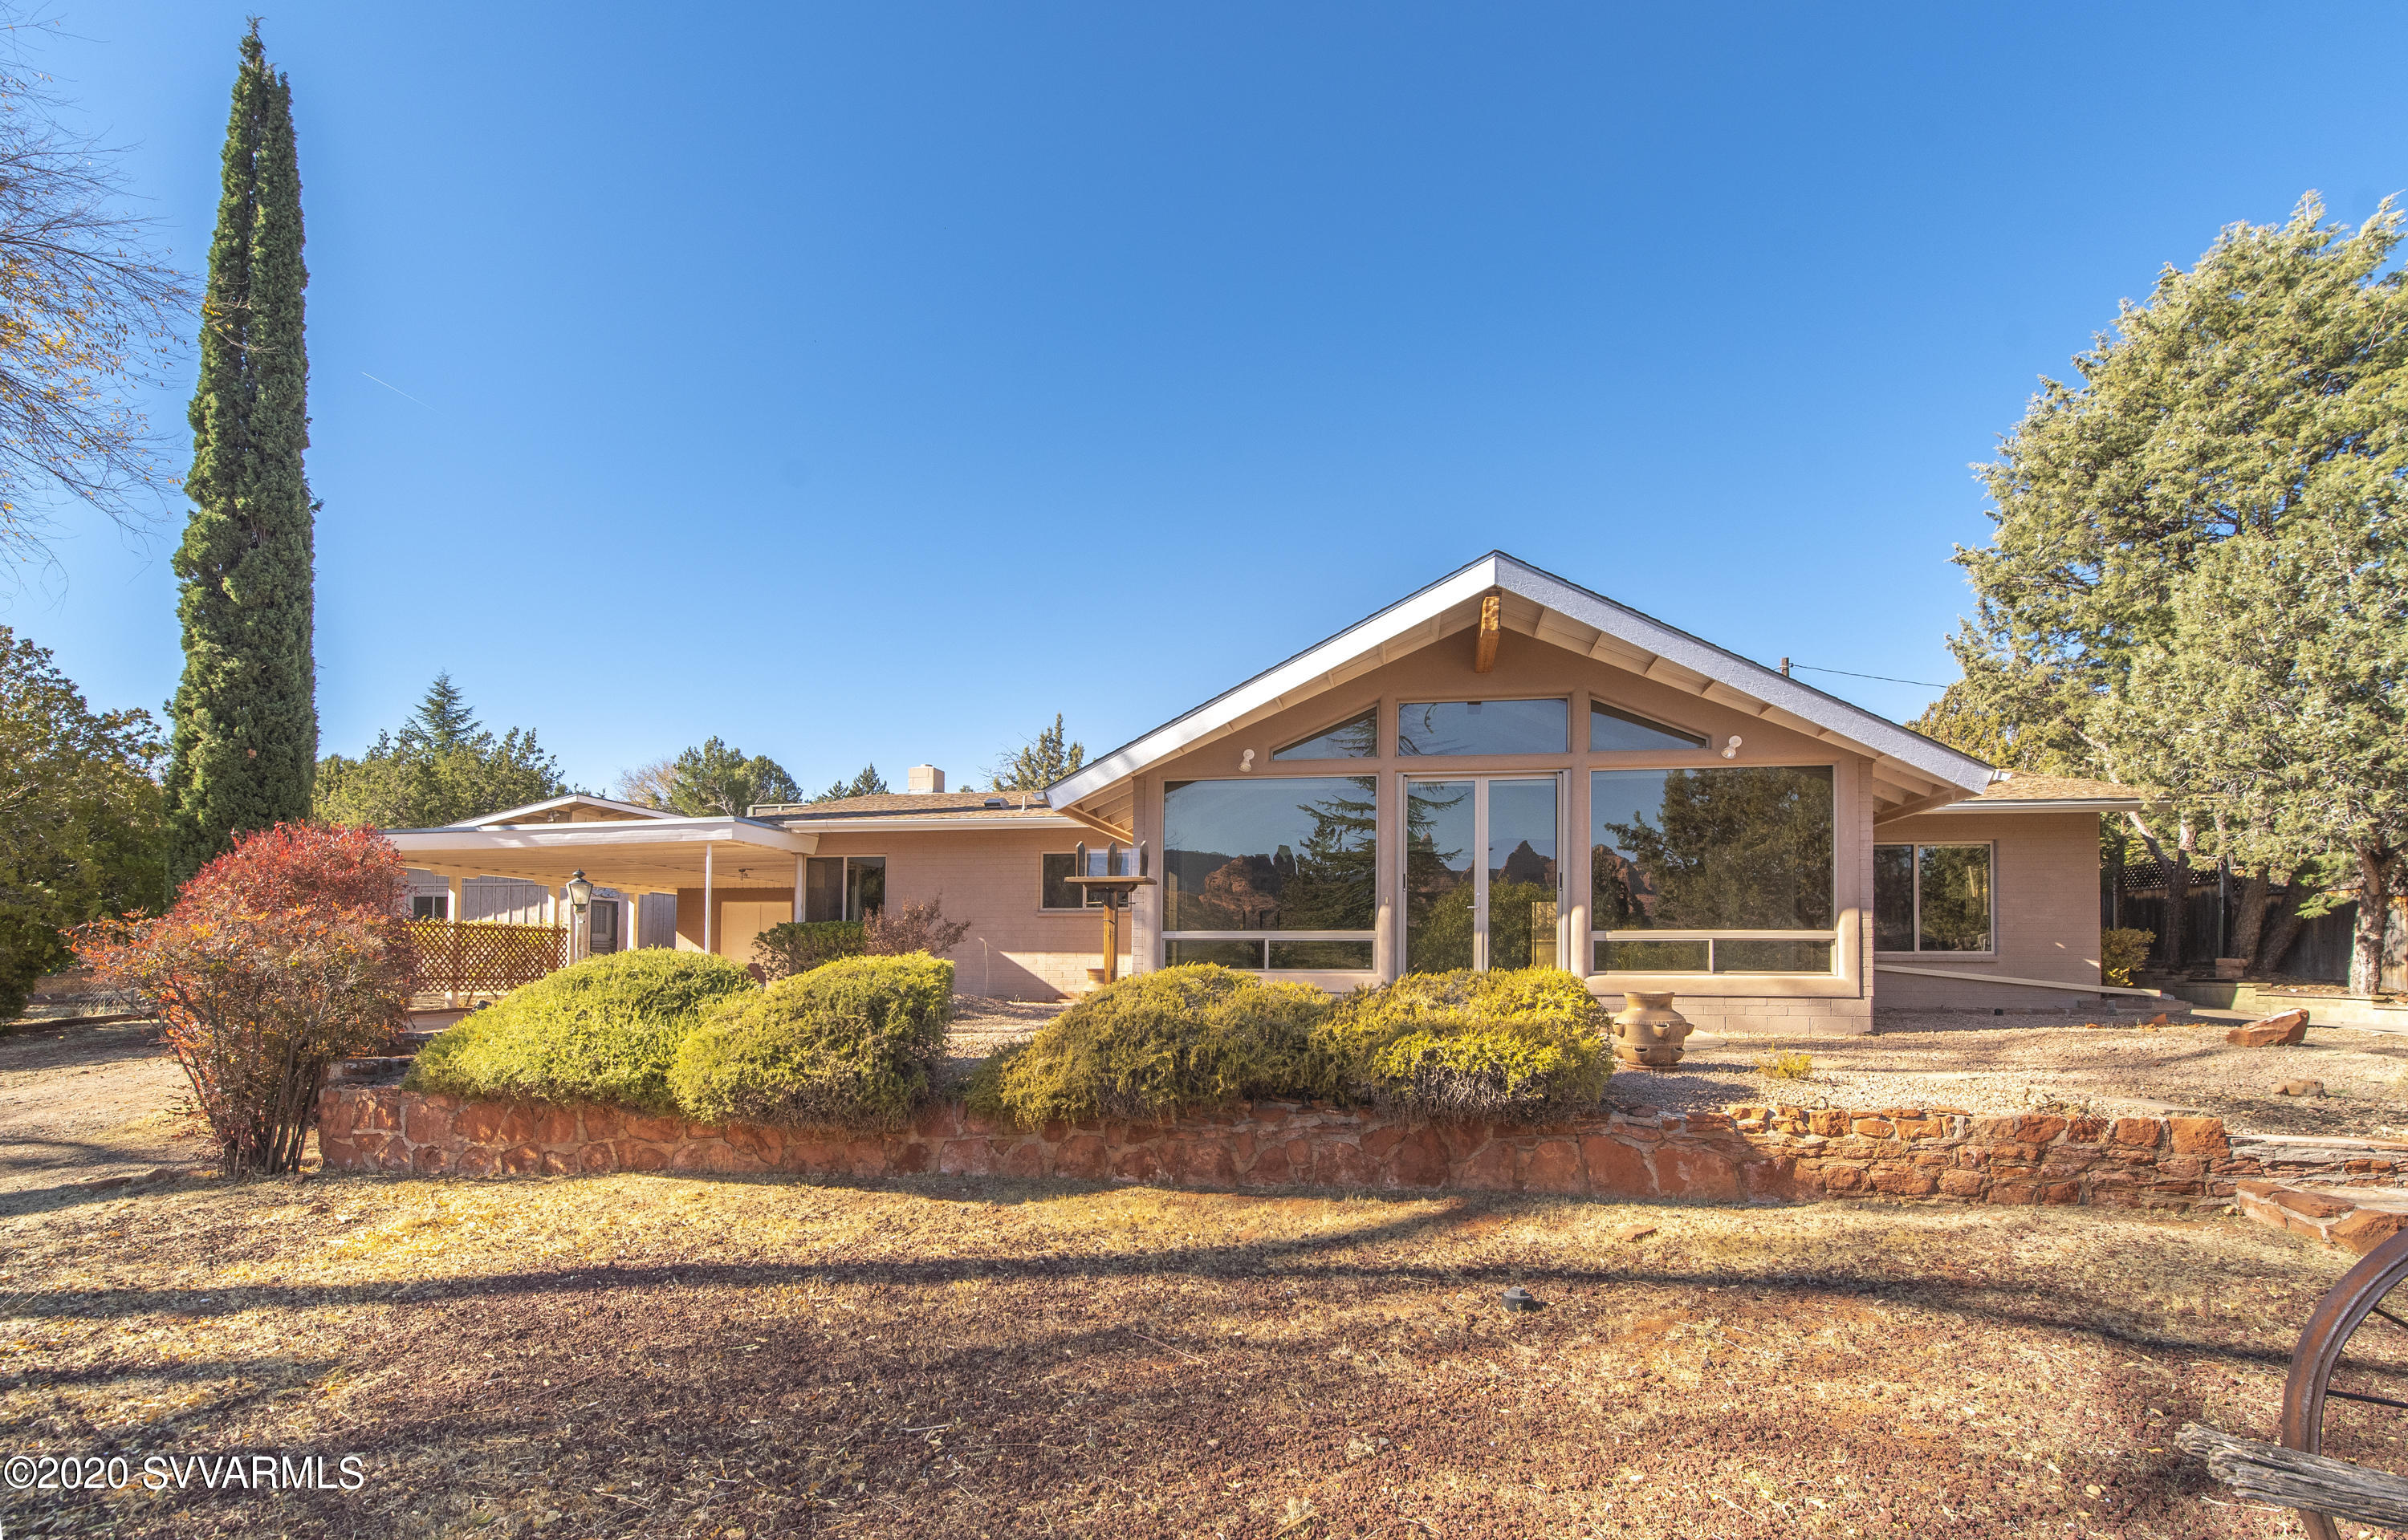 45 Old Crow Lane Sedona, AZ 86336